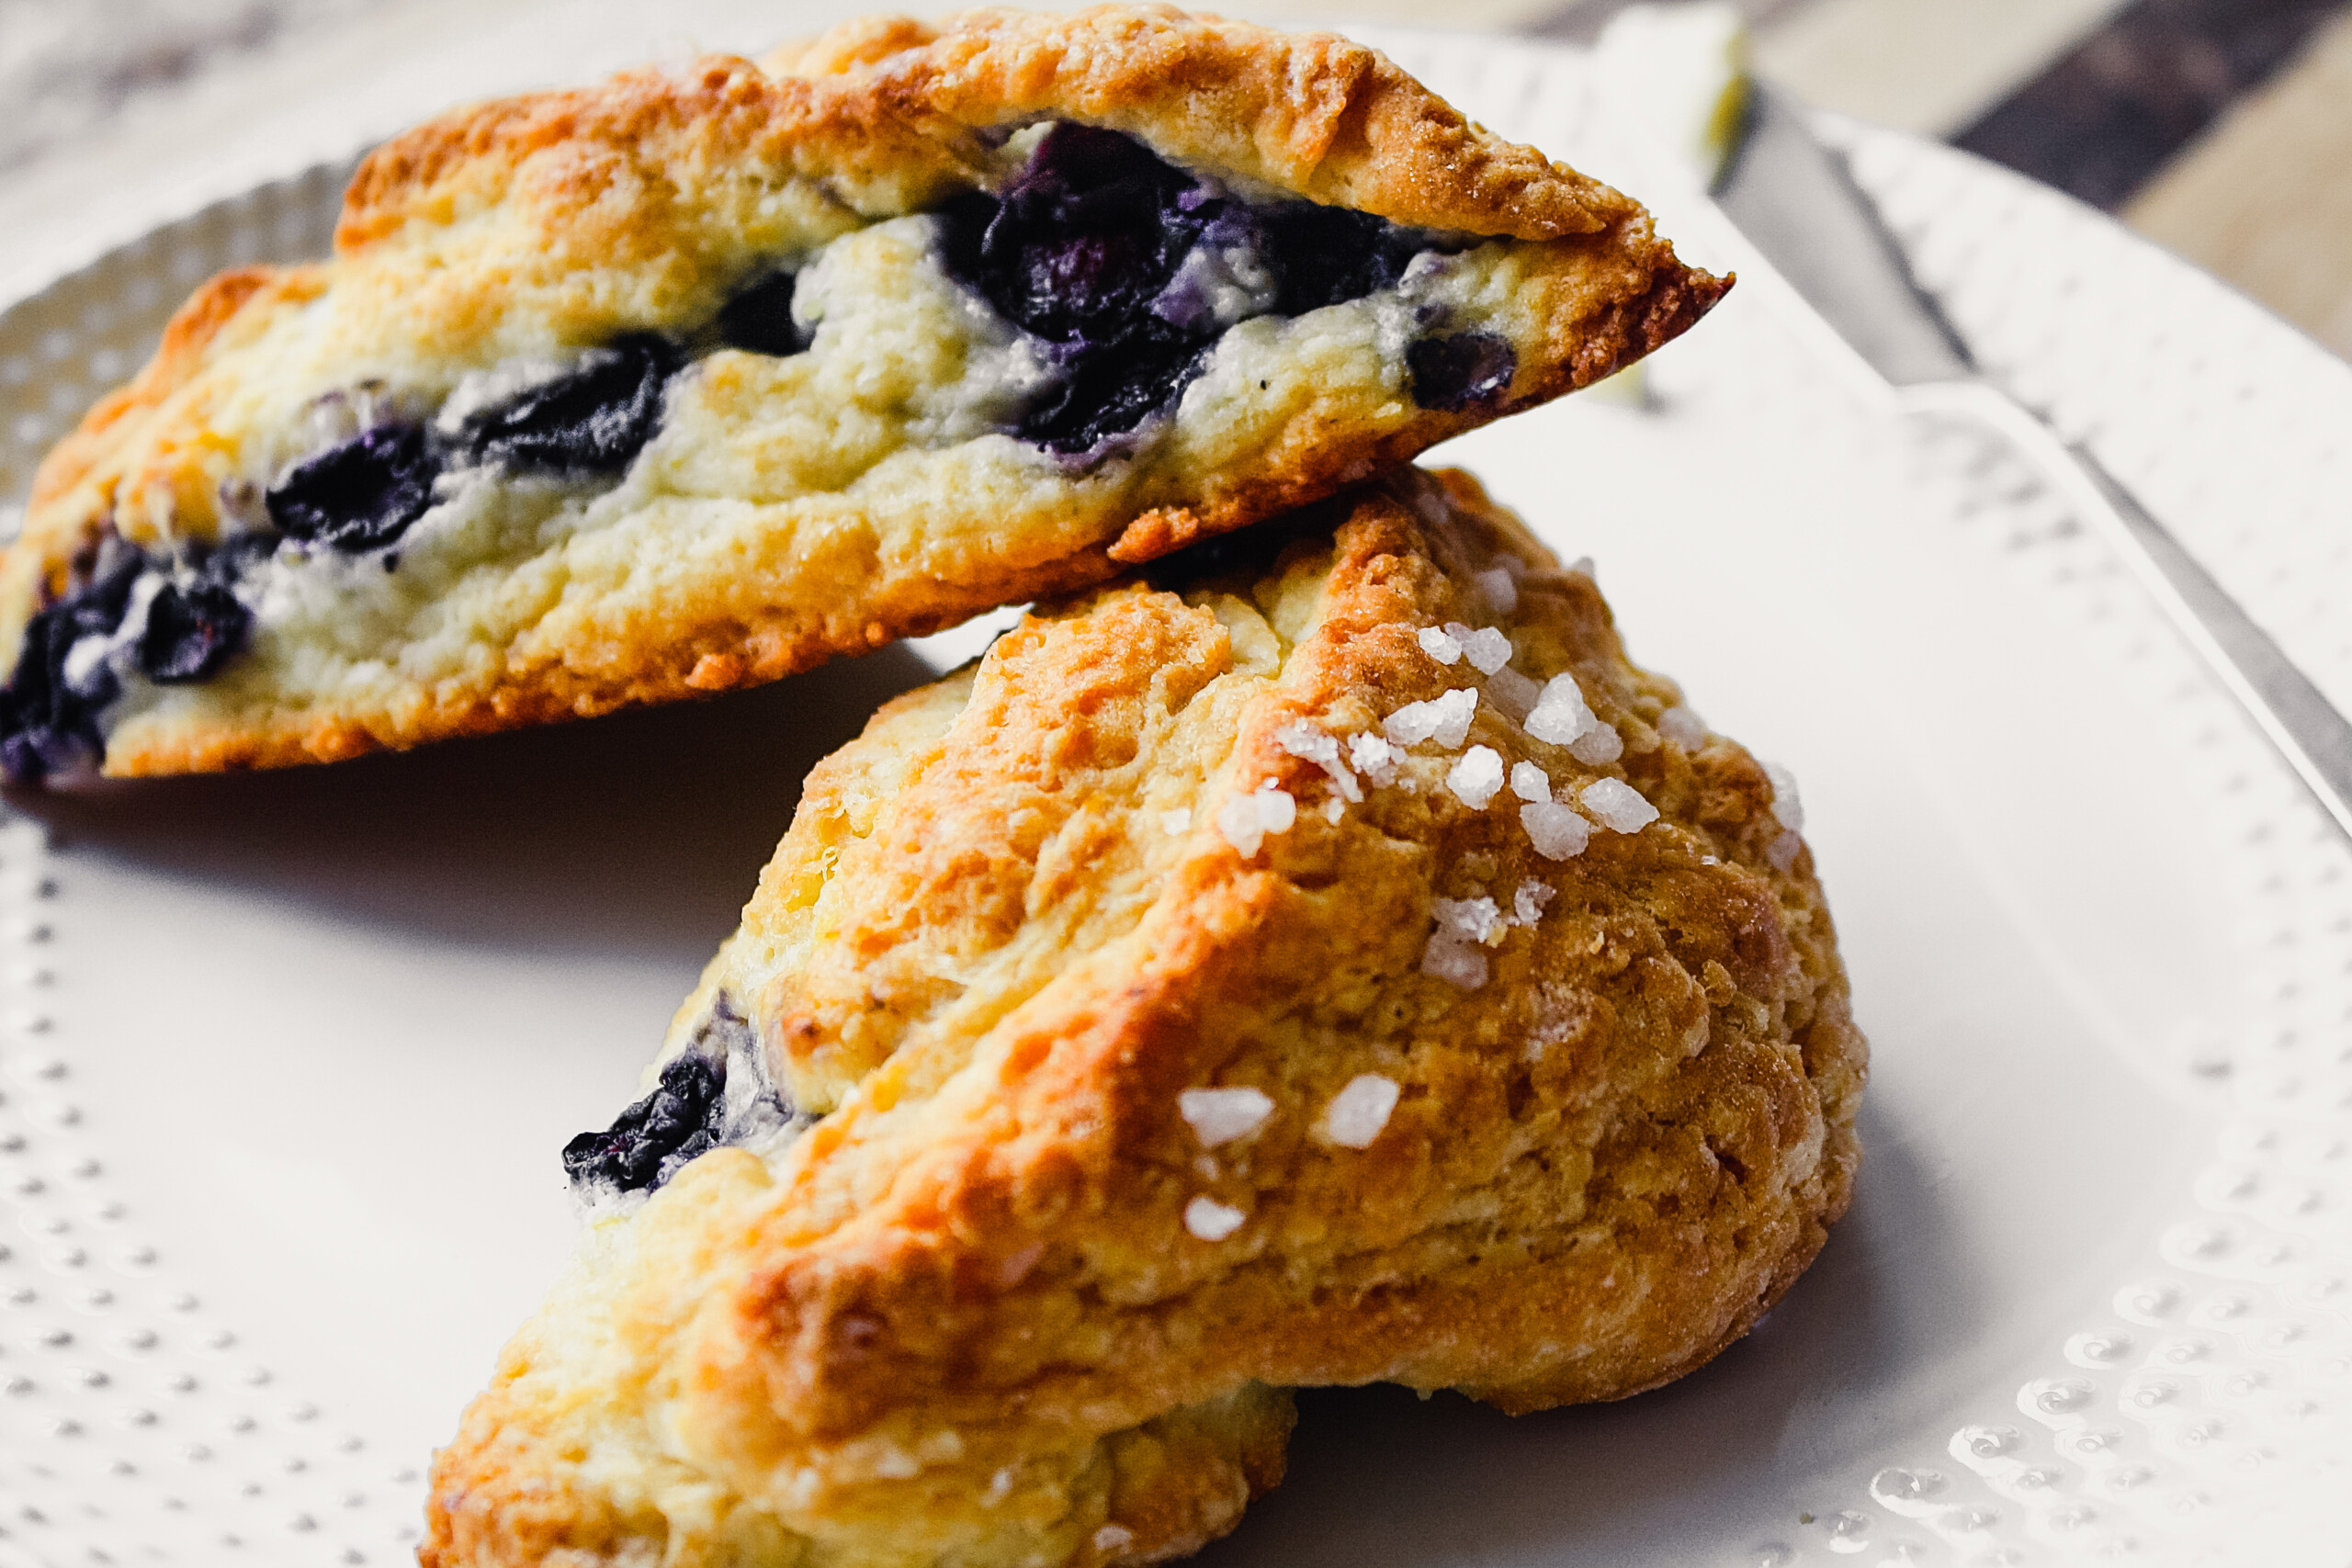 Photograph of healthy low fat scones stacked on a white plate